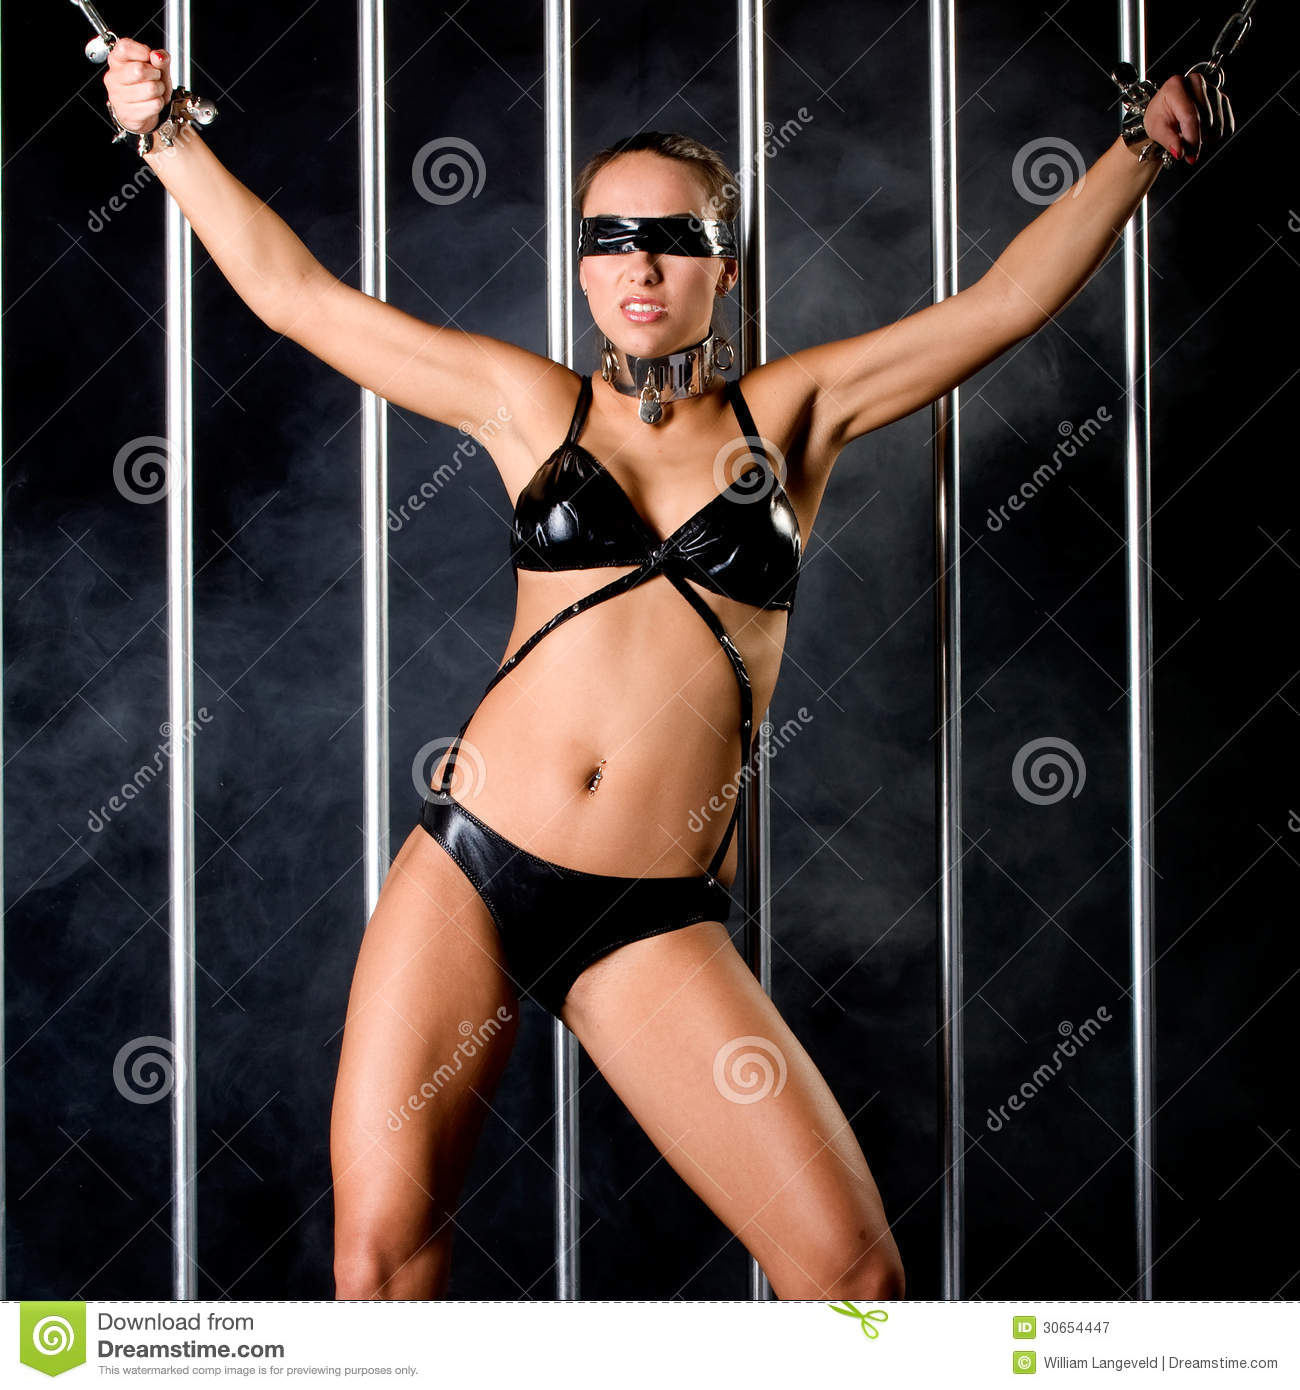 A Very Beautiful And Woman Bound With Steel Handcuffs And Blindfolded In Lingerie In Bondage Style